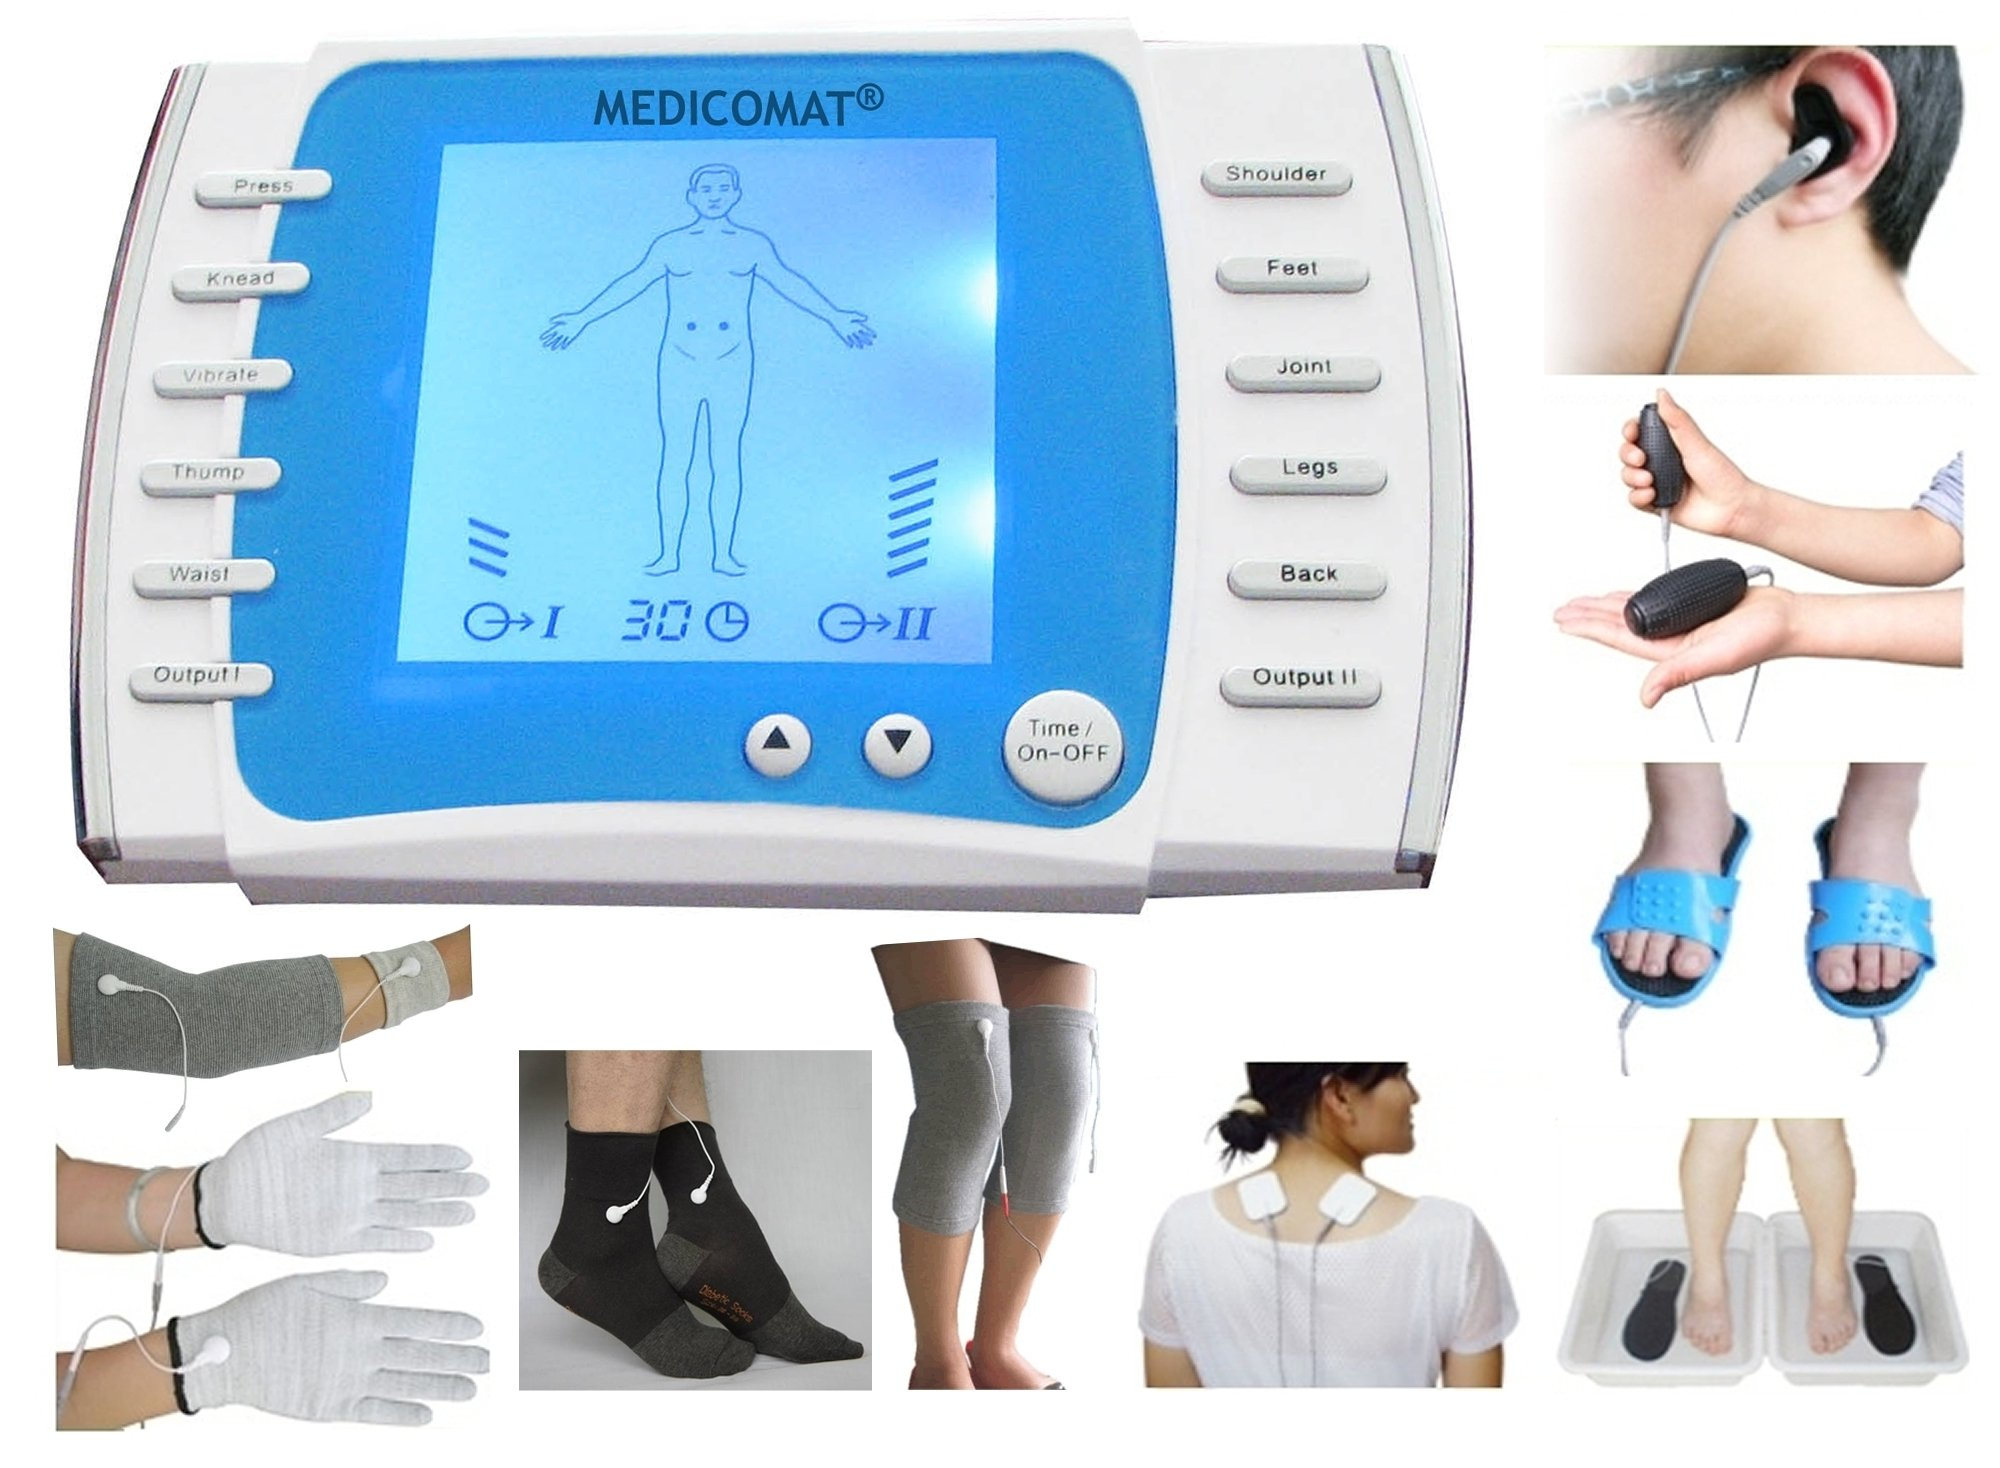 Elbow Tendonitis Treatment Medicomat Elbow Therapy by Medicomat